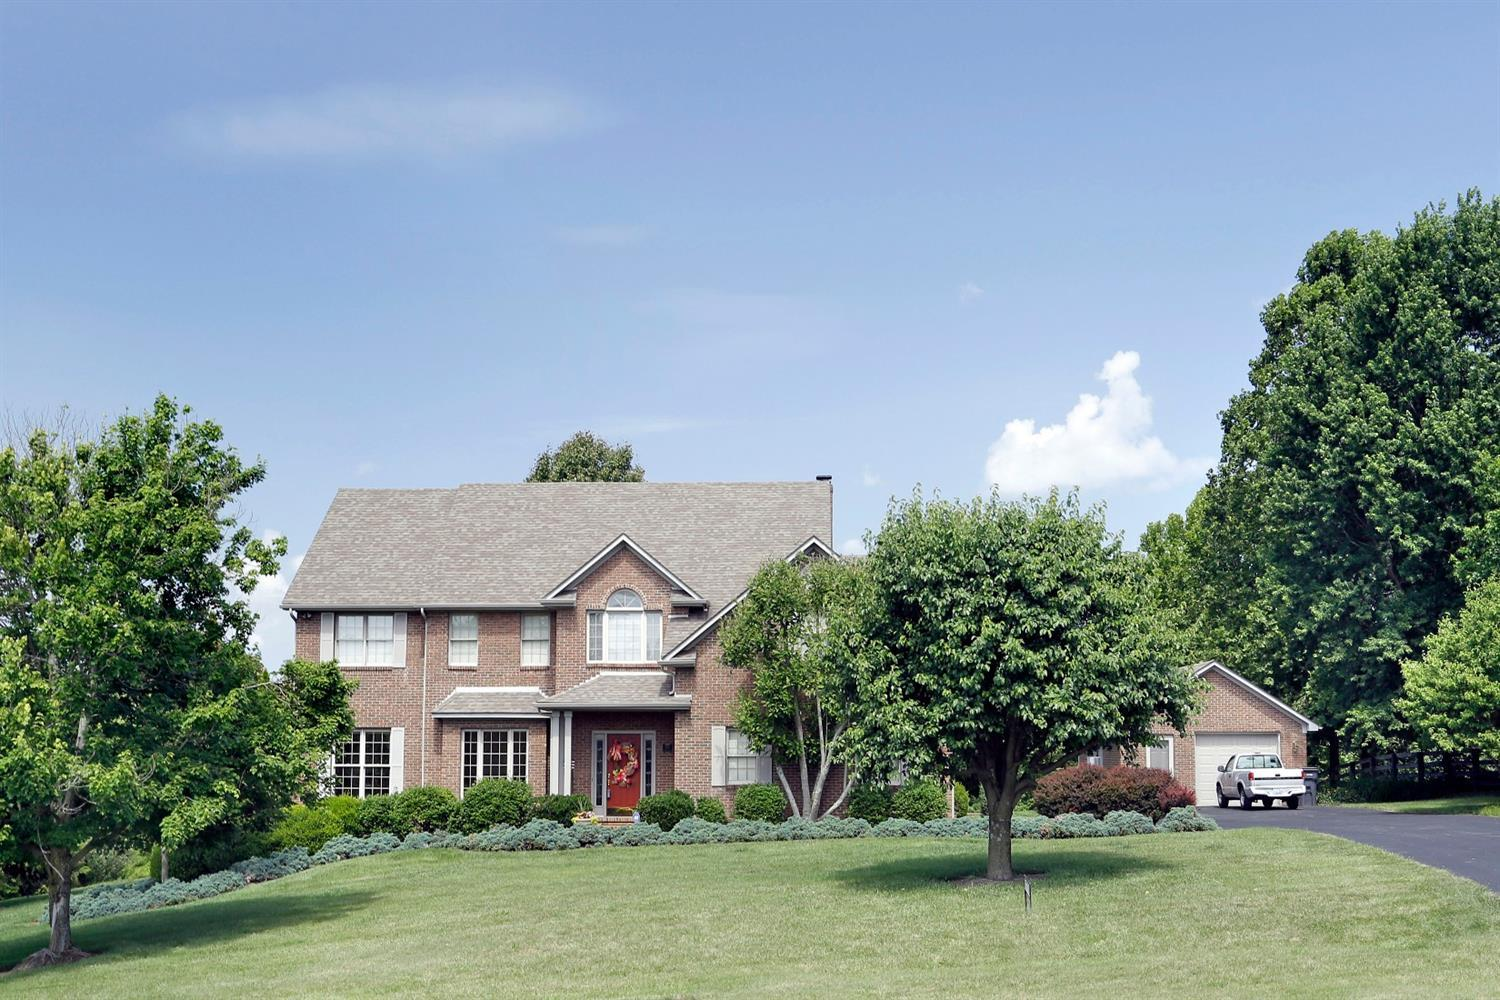 103 Labell Drive, Richmond, KY | MLS# 1804019 | Delia Crumbaker